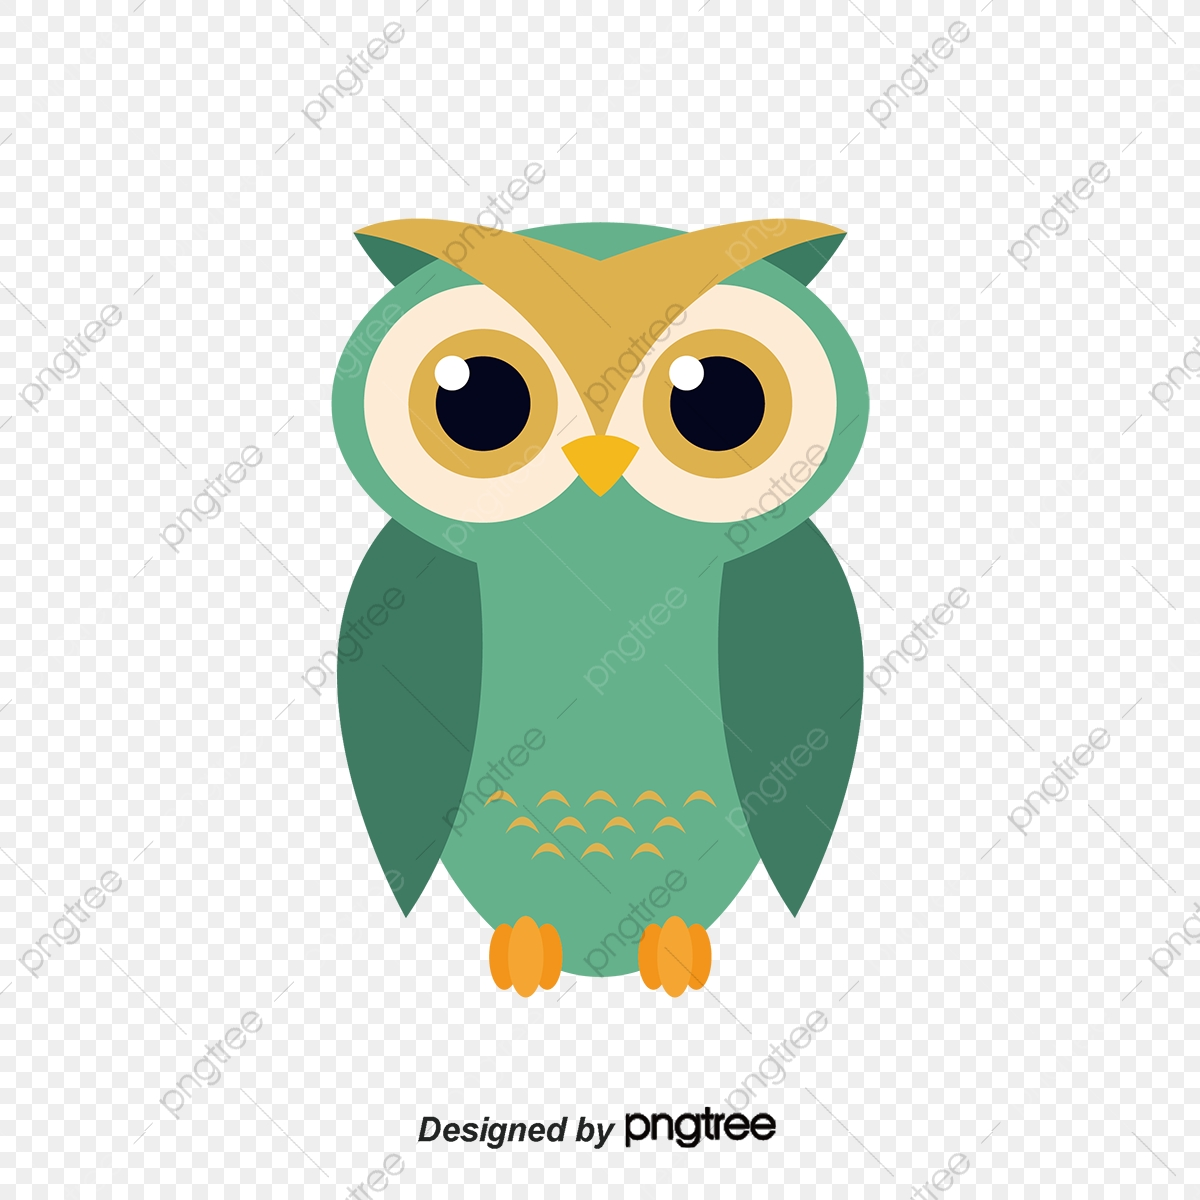 Owl in Flight PNG Clipart | Gallery Yopriceville - High-Quality Images and  Transparent PNG Free Clipart